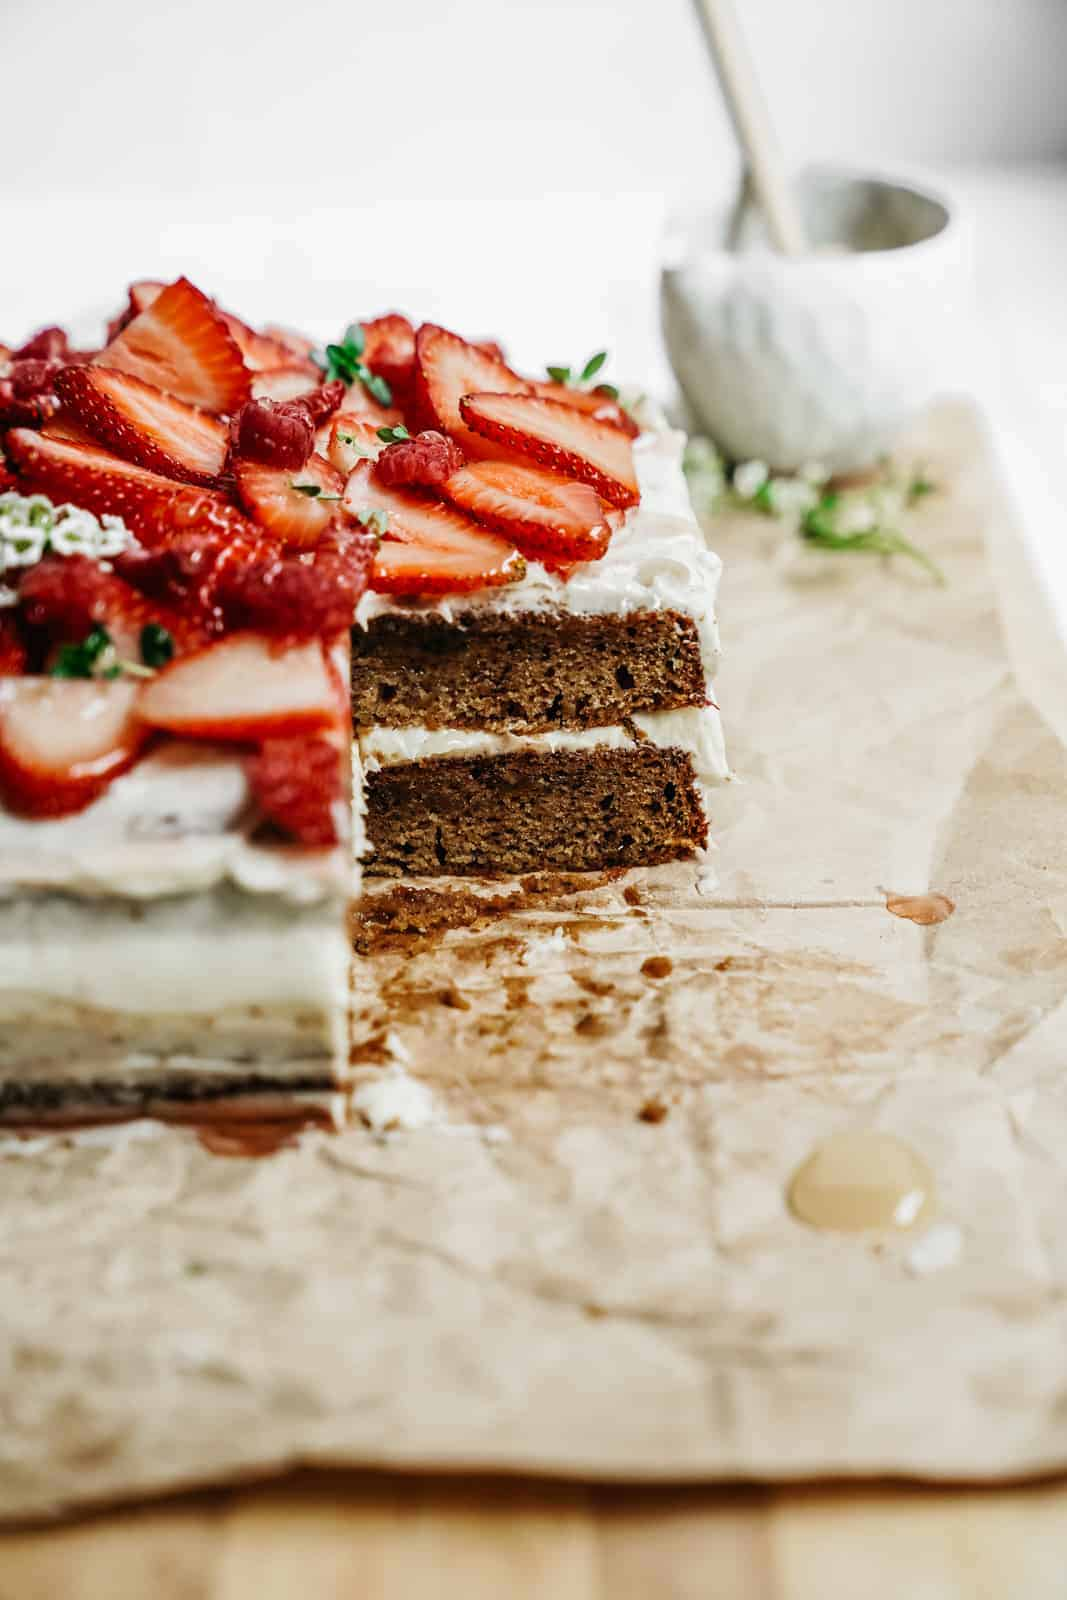 Easy Honey Cake with a slice out of it and topped with lush red strawberries.